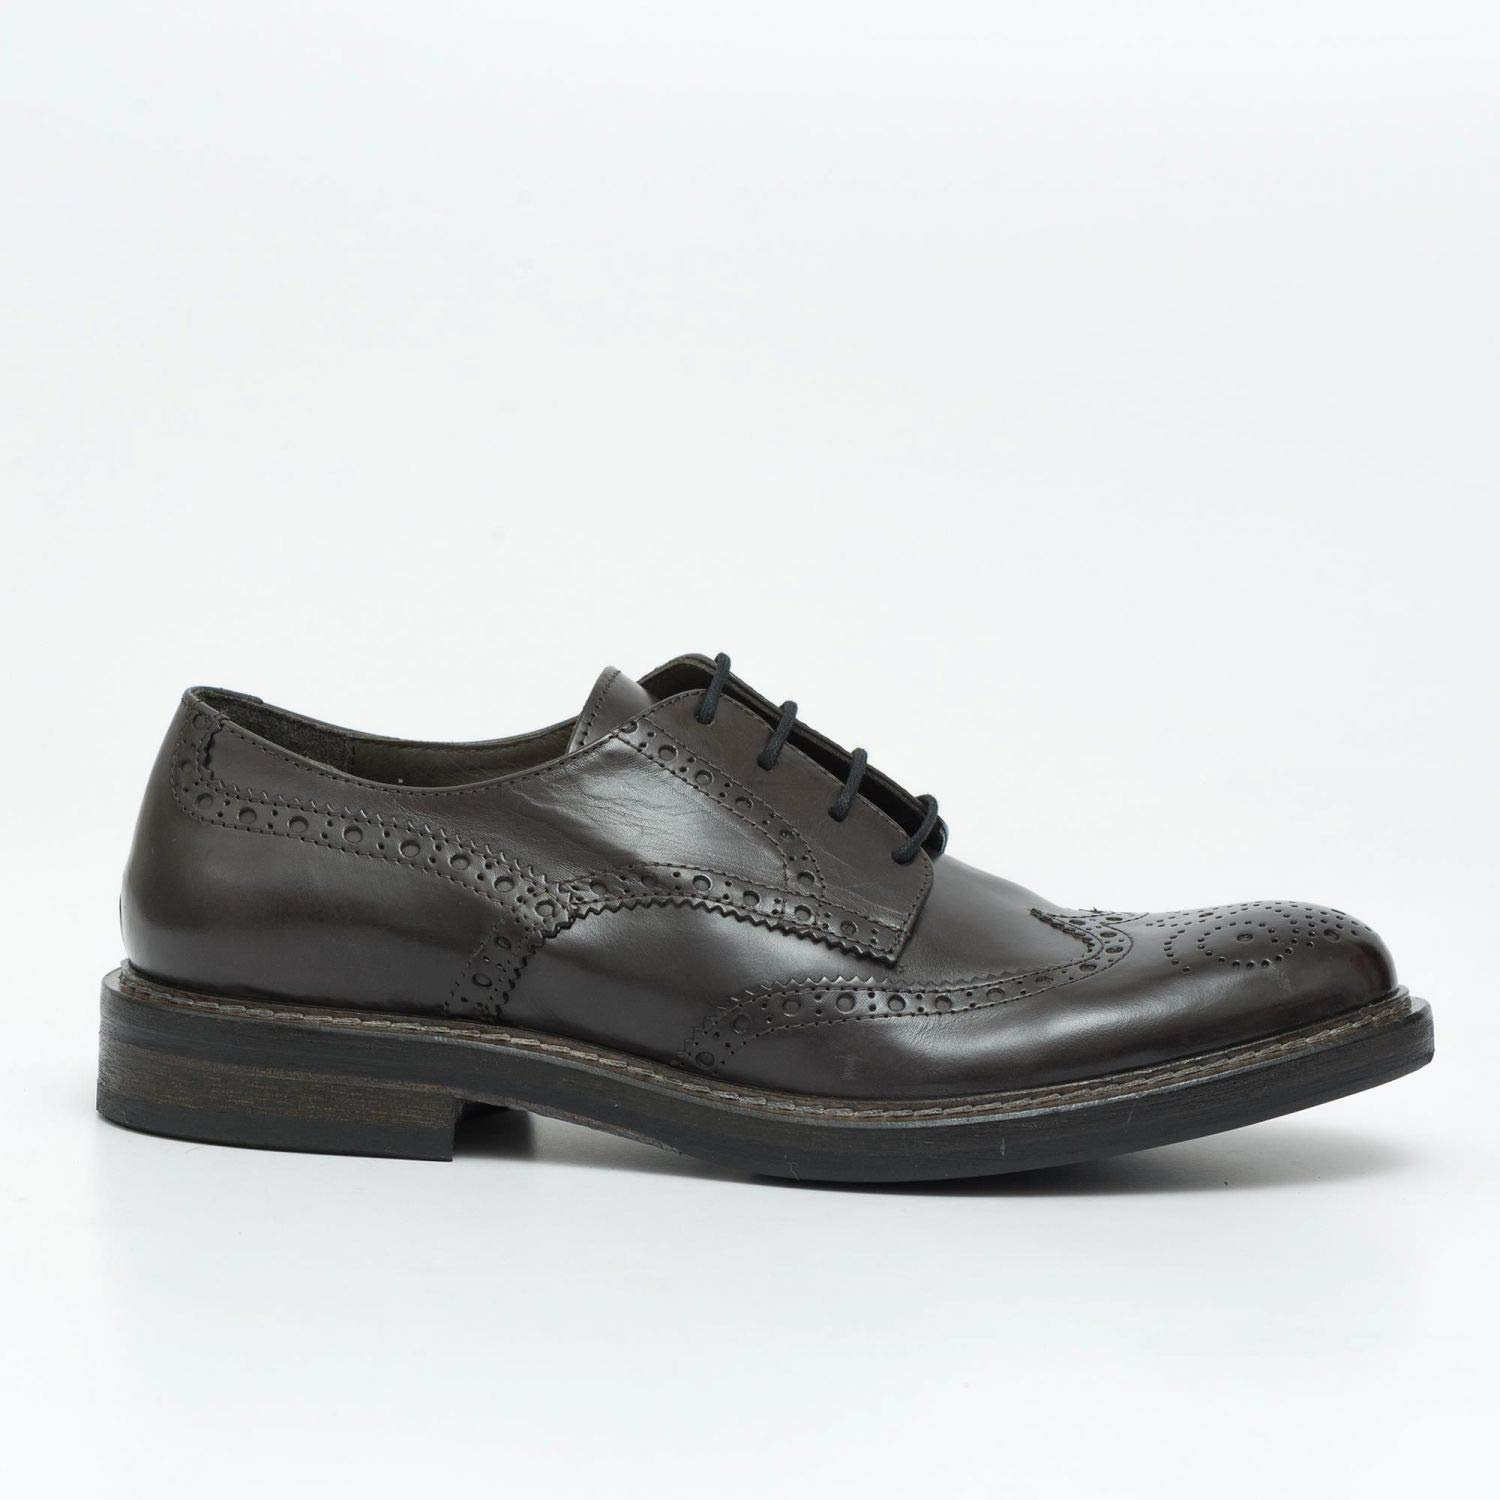 HUNDrot - Derby Full Brogue schuhe in grau Leather - M 68132 VITELLINO grau grau